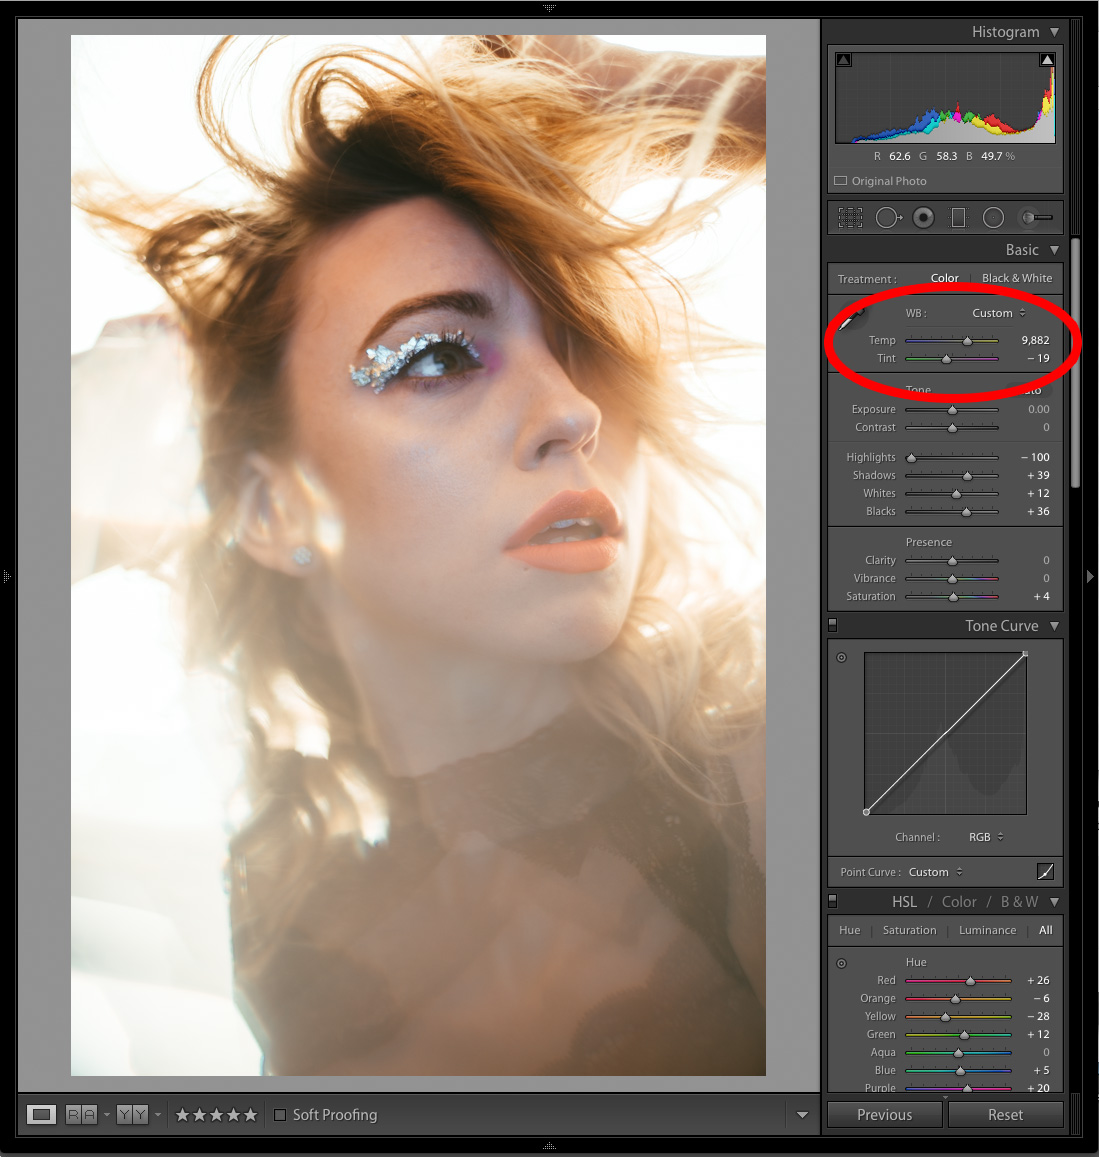 Then I switch my gel to a CTB gel on the reflector. This time I countered the heavy blue light being bounce back onto the model by adjusting my Kelvin all the way up to nearly 10,000K. This is of course adding a lot of orange into the shot which results in that warm glow around the model.